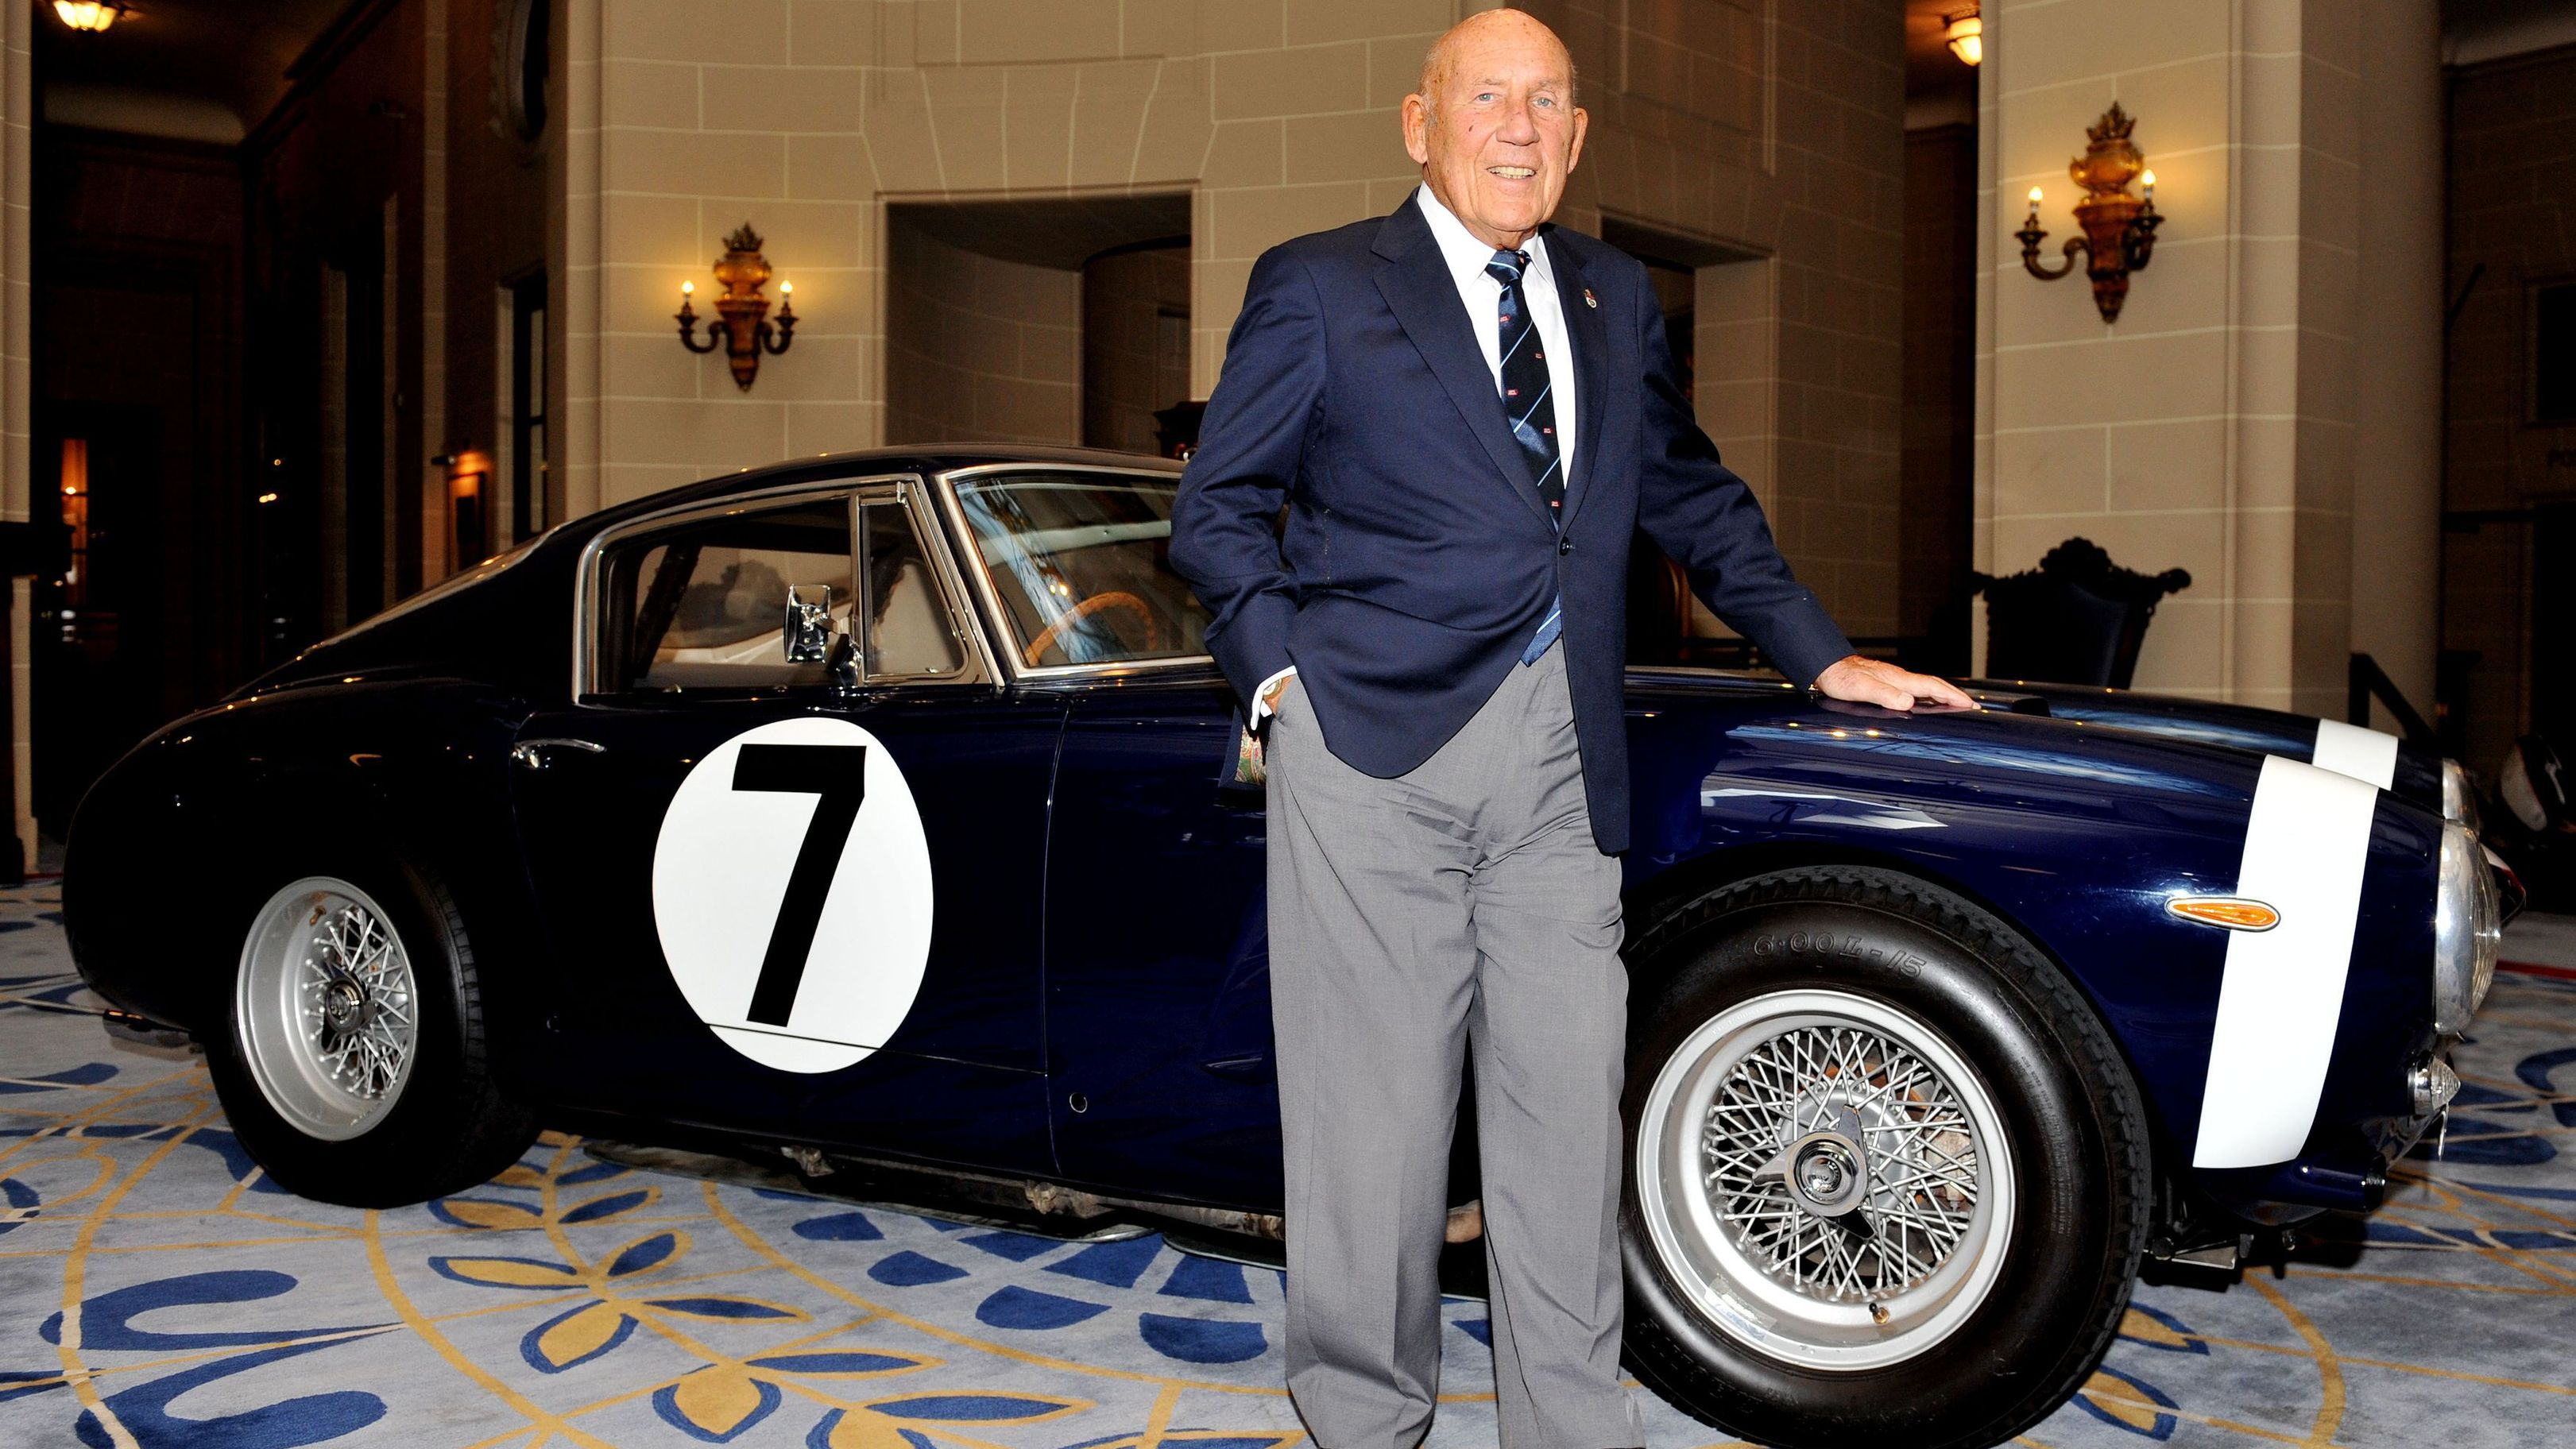 Sir Stirling Moss stands in front of the Ferrari 250 GT SWB back in 2015, which he raced to victory in the Goodwood Tourist Trophy in 1961.